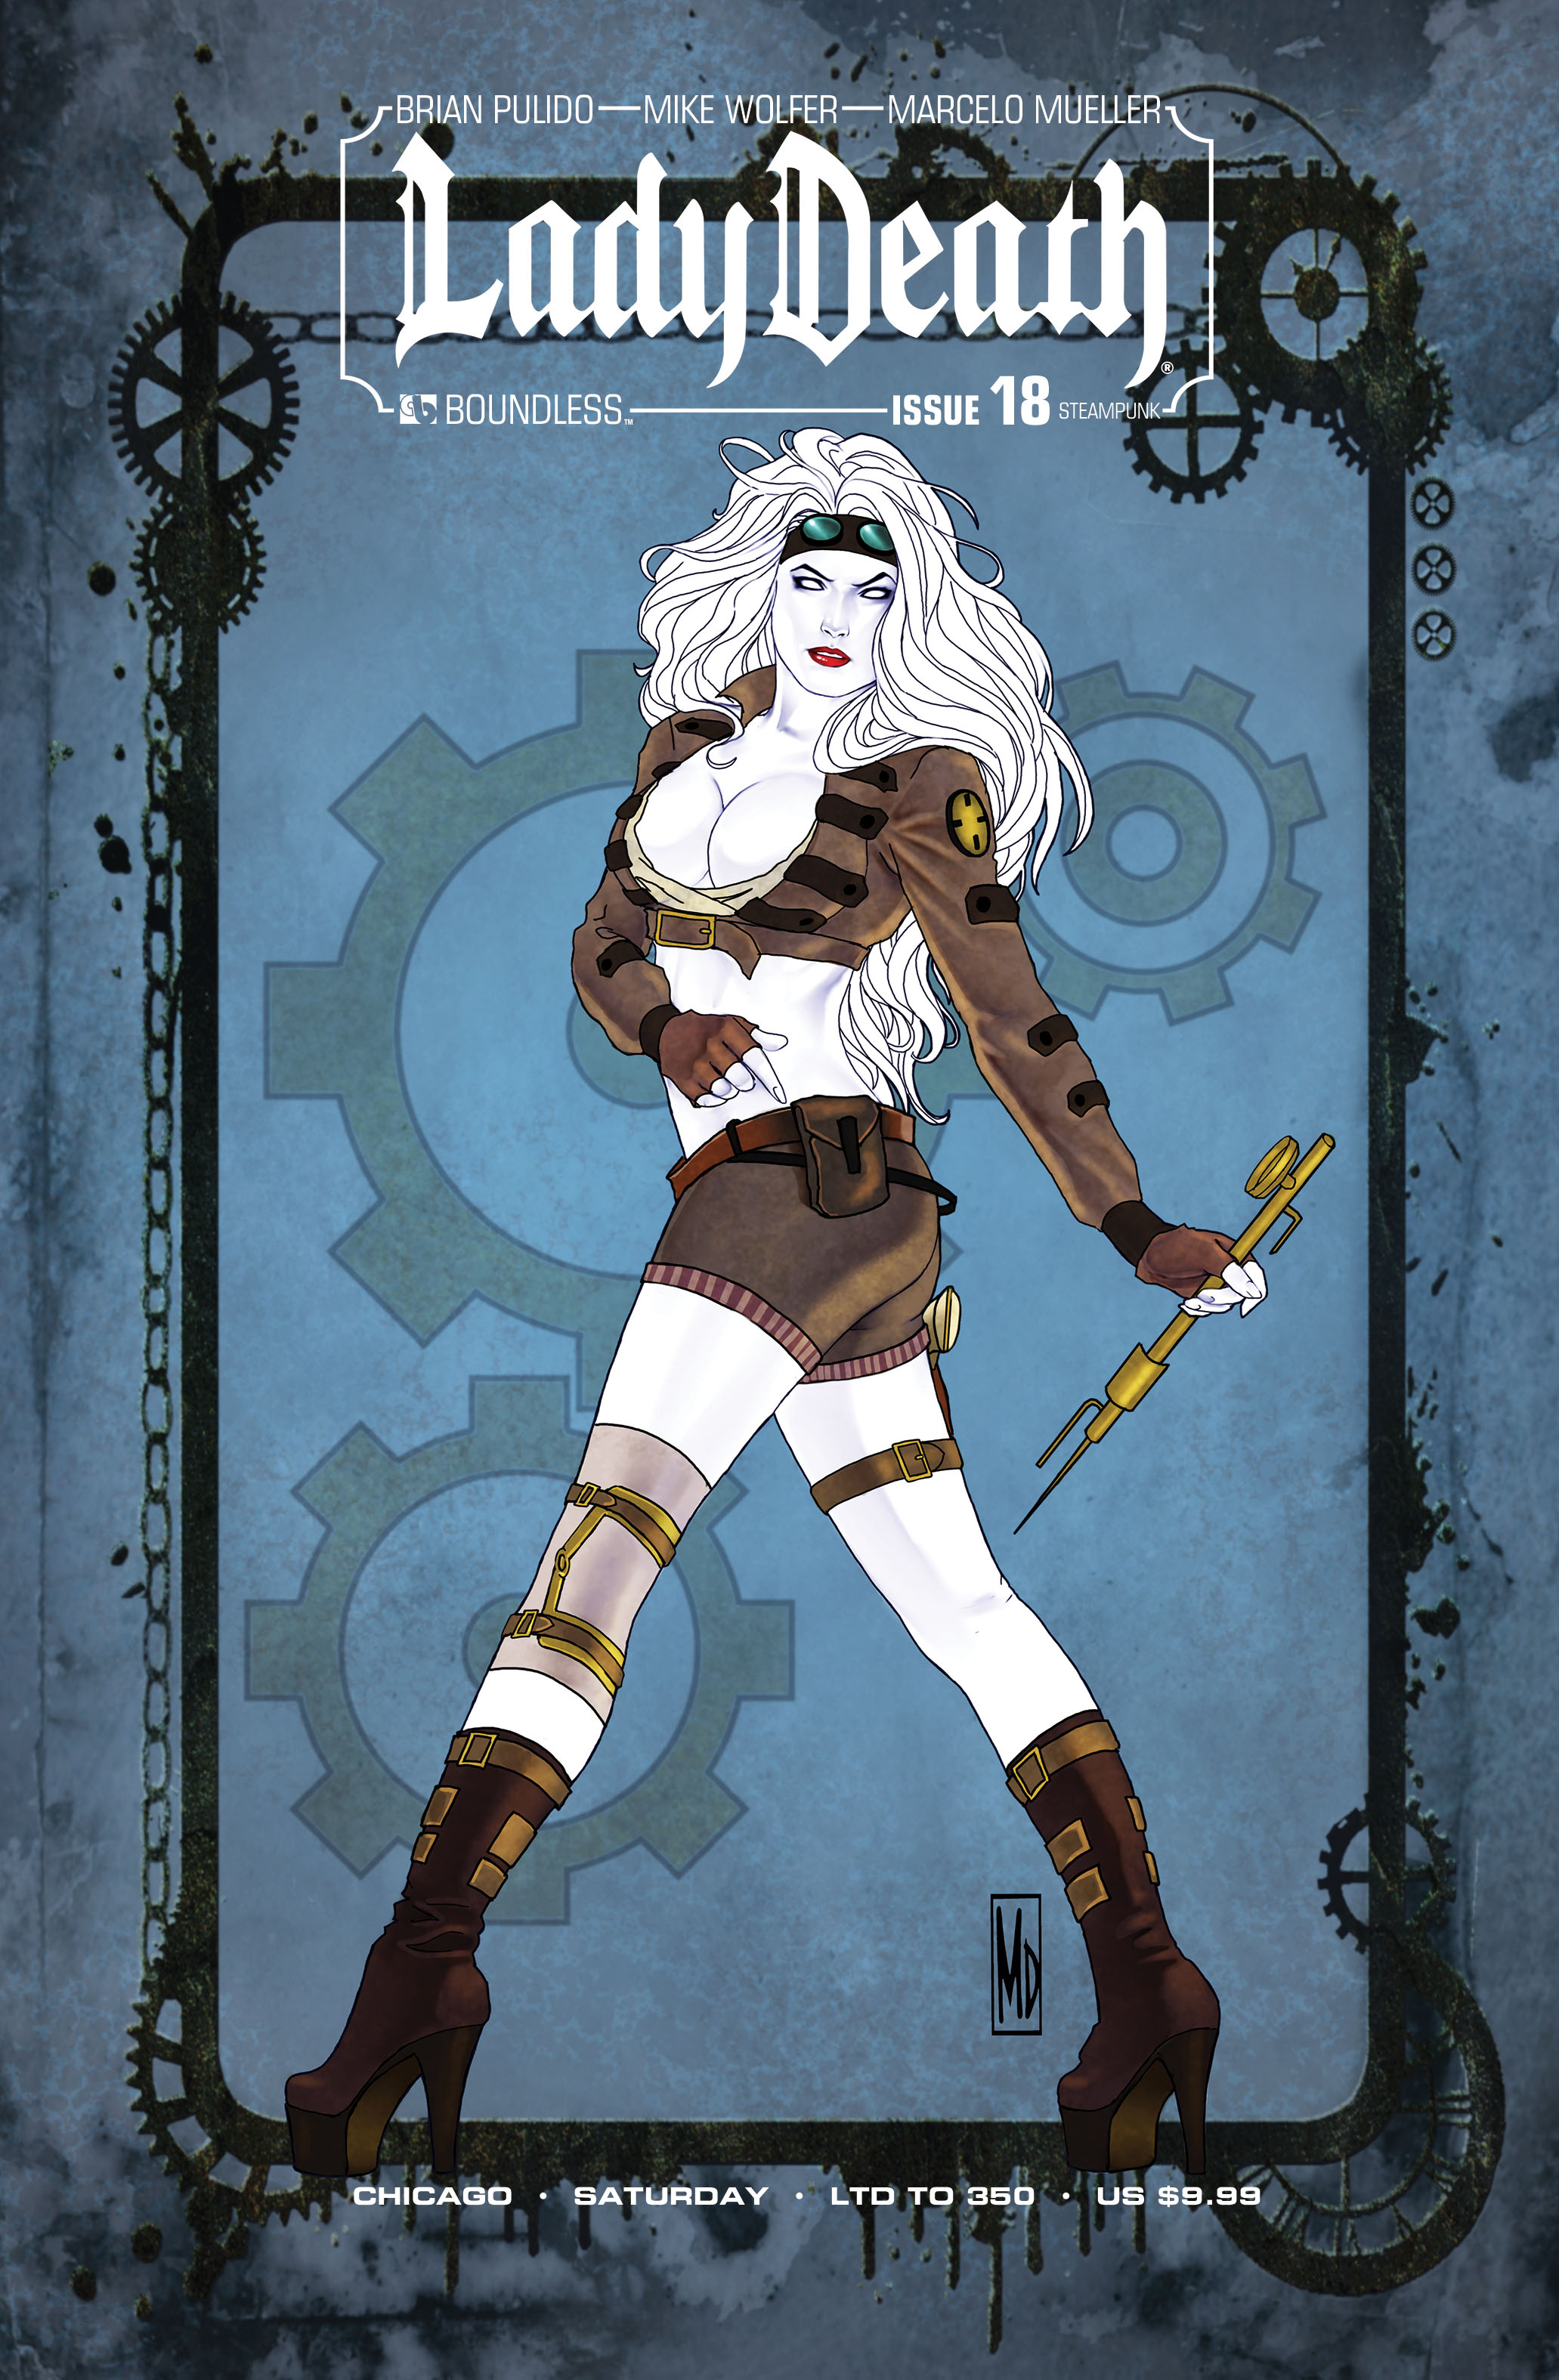 LADY DEATH (ONGOING) #18 CHICAGO STEAMPUNK SATURDAY (MR)